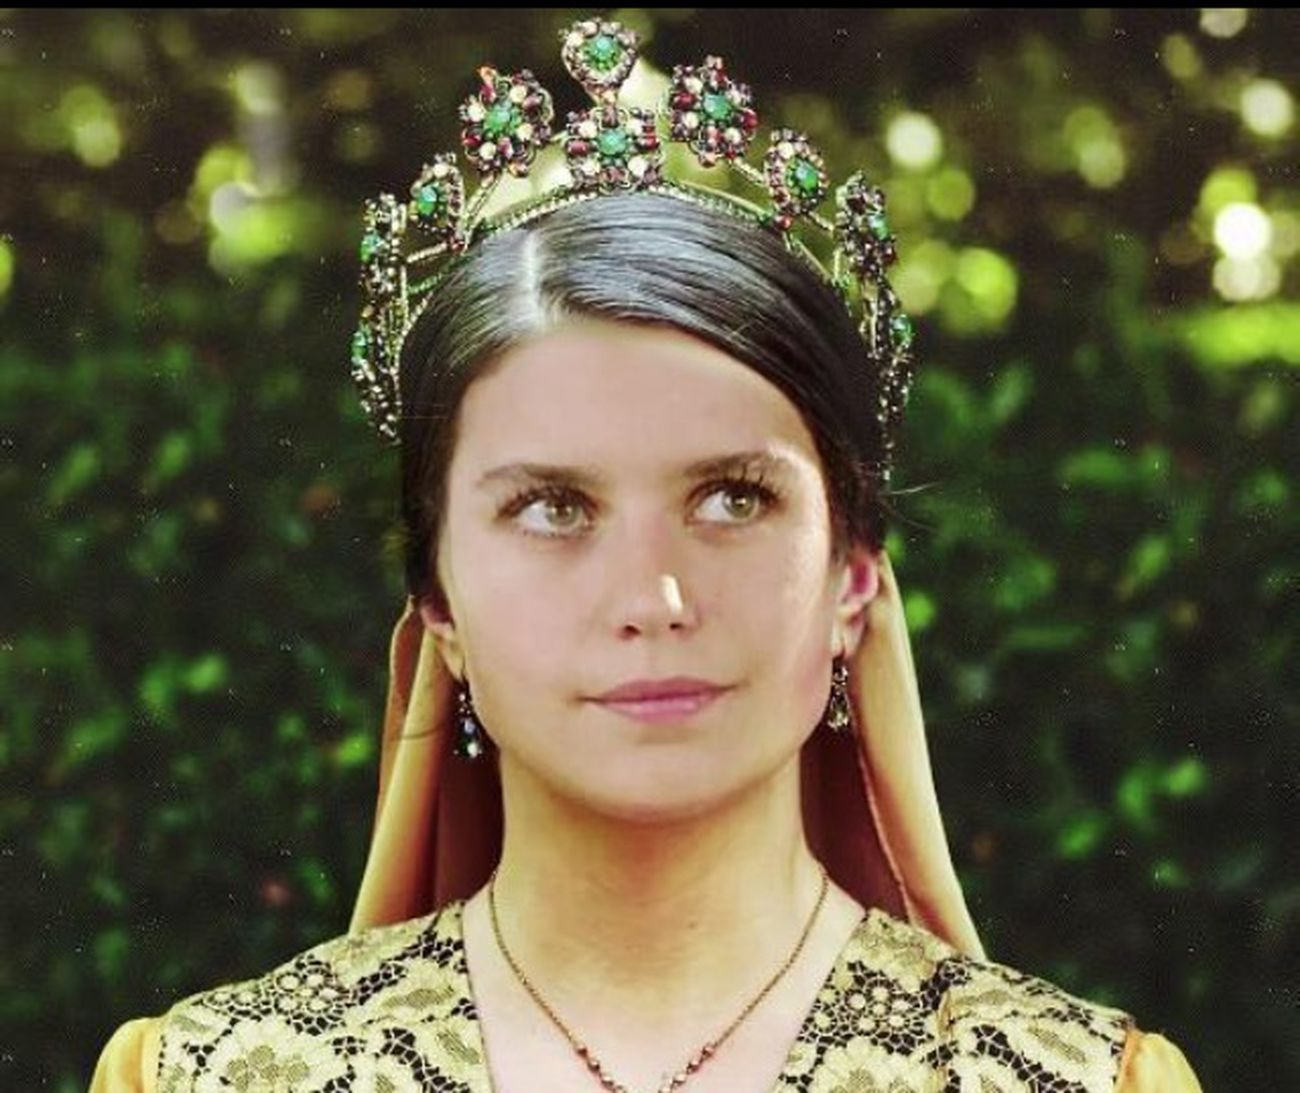 Good morning 💕 beren saat 😍😍 Berensaat